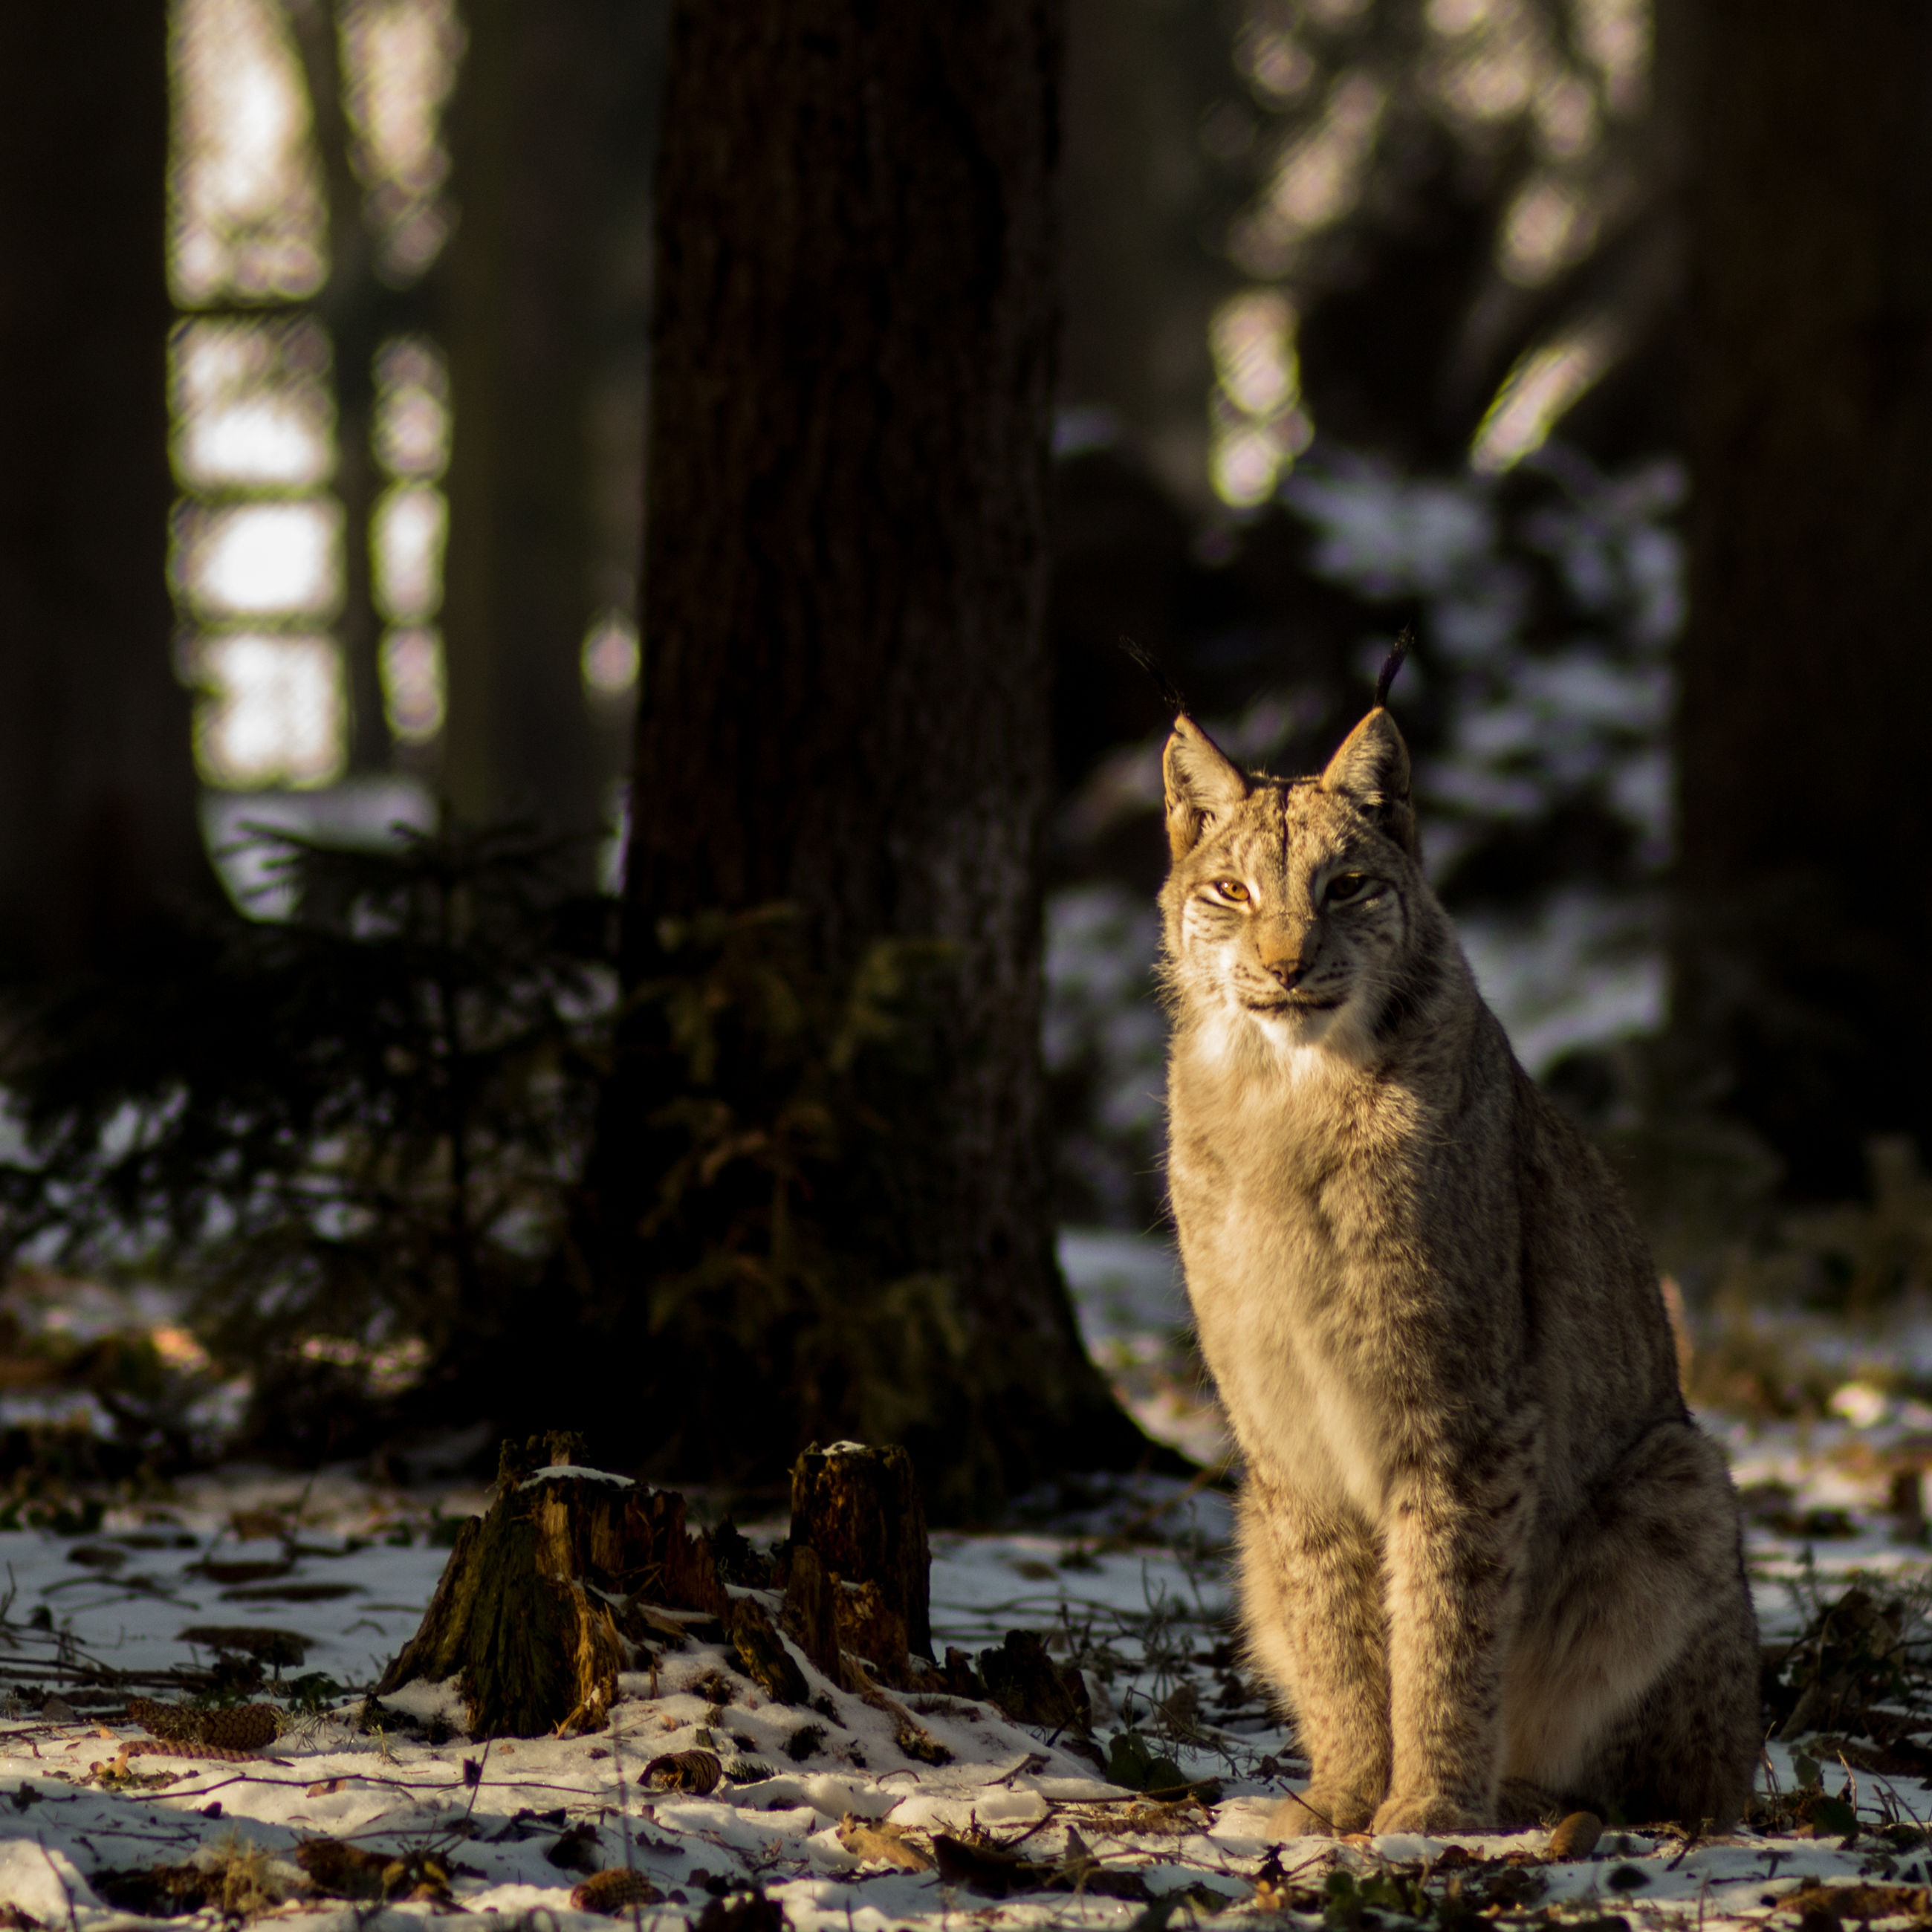 Cat sitting on tree trunk in forest